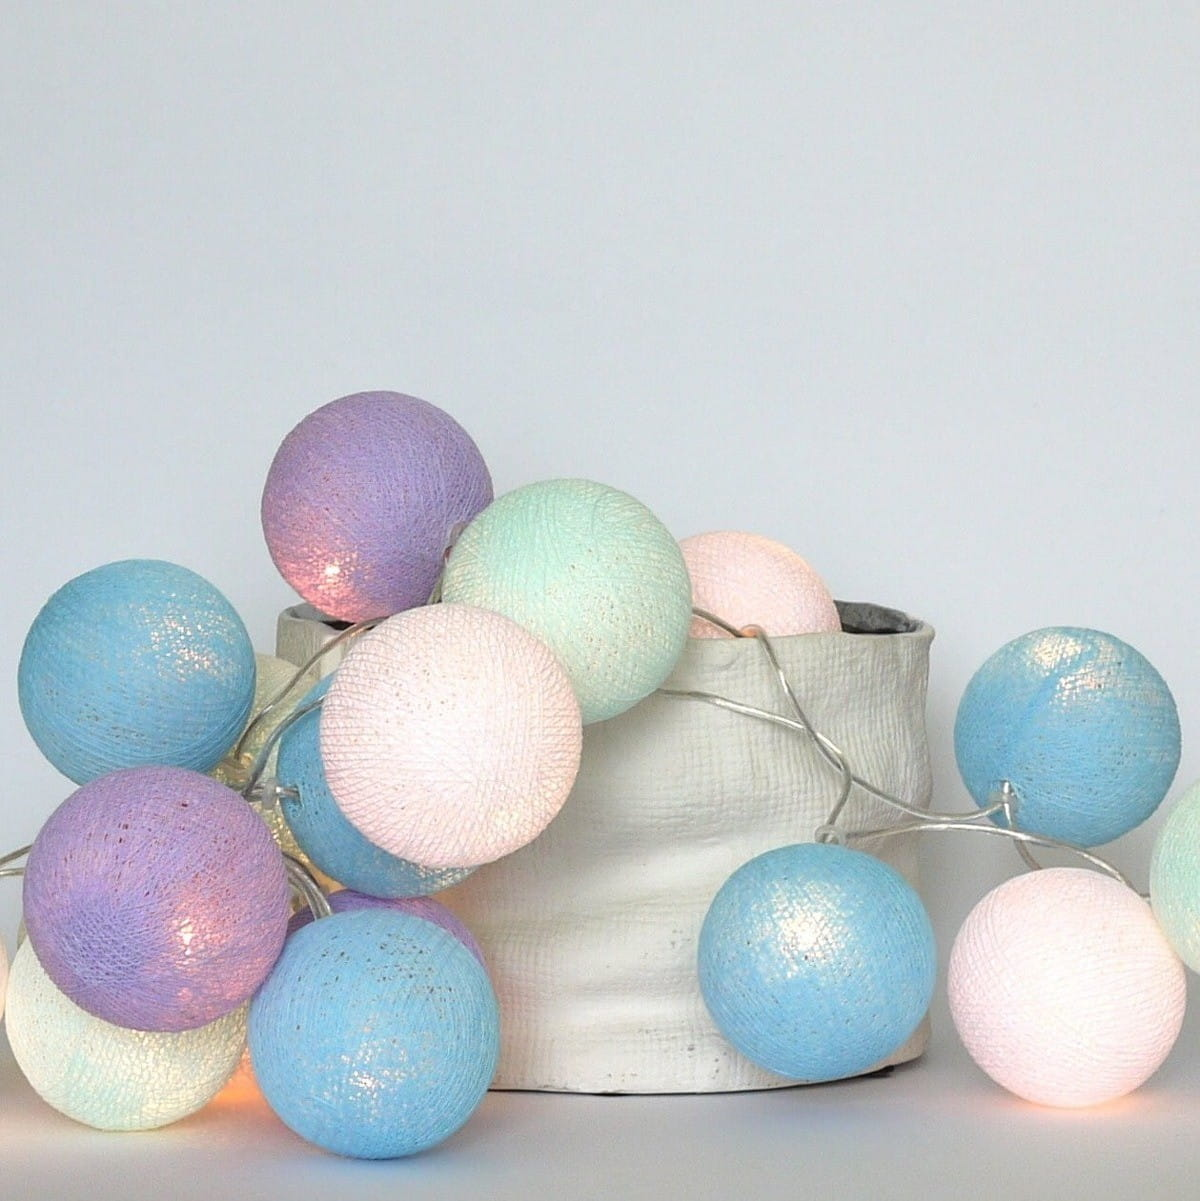 35 kul Baby Lavender Cotton Ball Lights